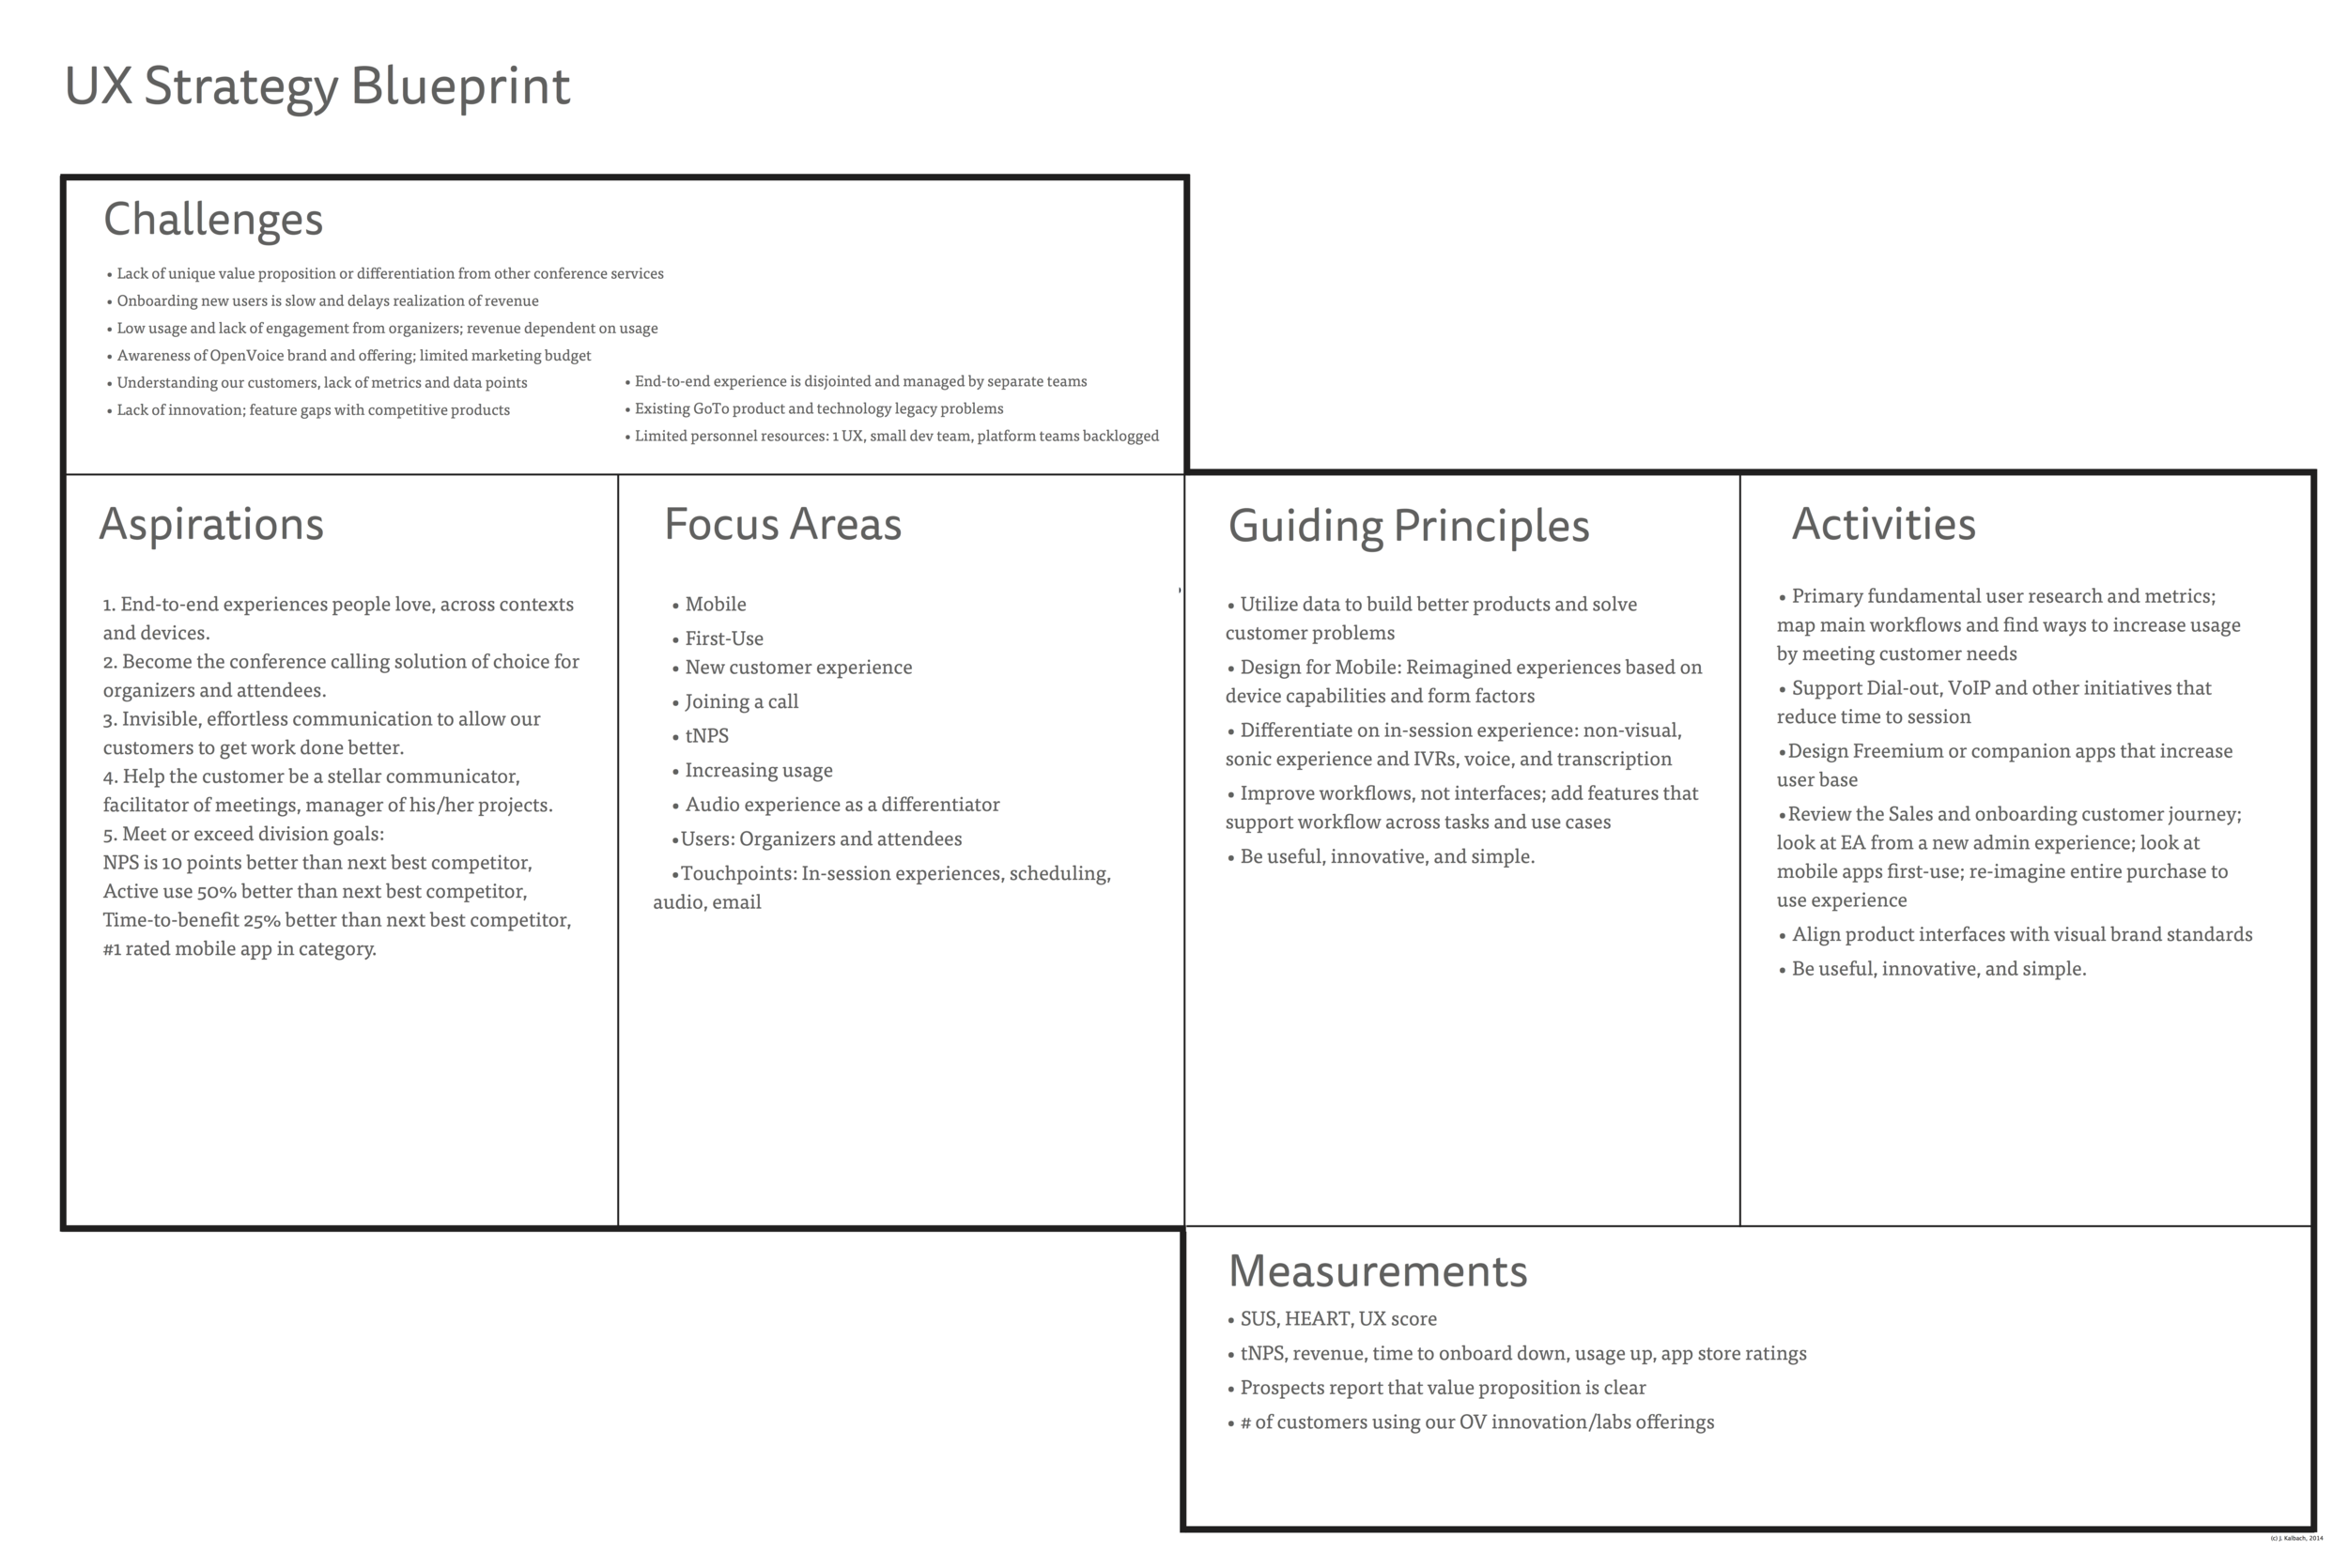 The UX Strategy Blueprint provided focus